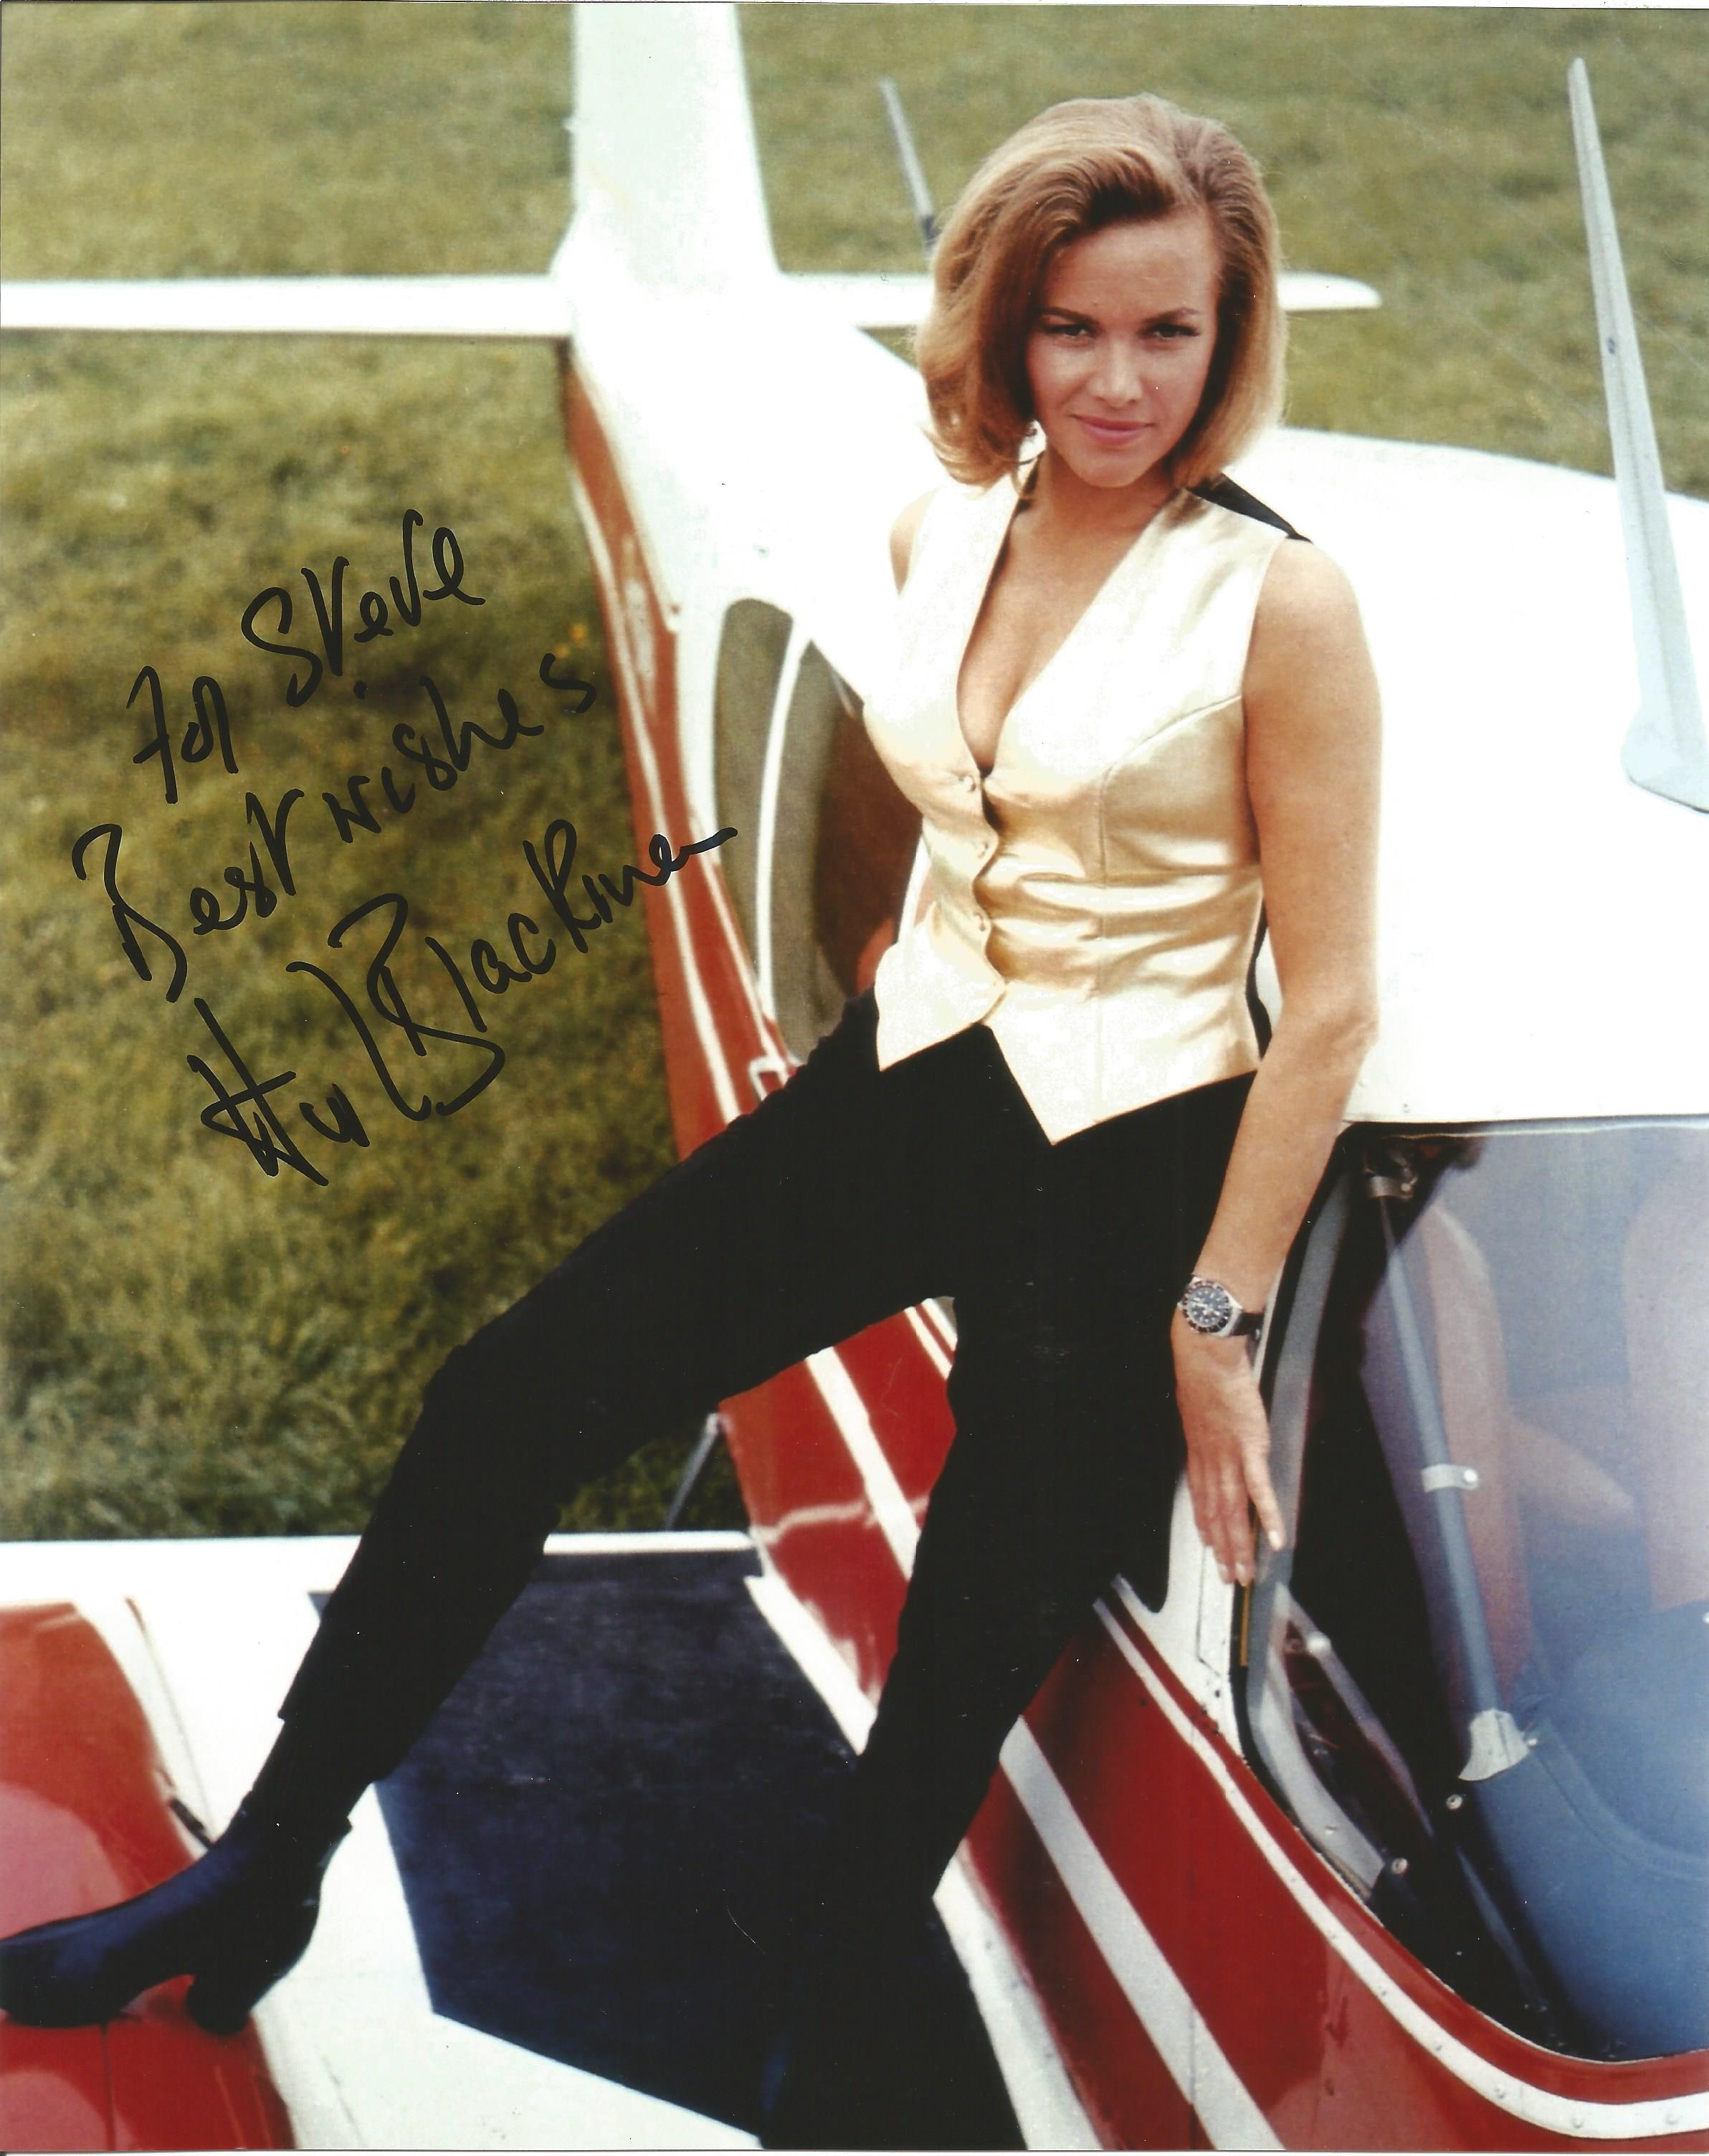 Actress Honor Blackman 10x8 signed colour photo Goldfinger image, dedicated to Steve. Honor Blackman